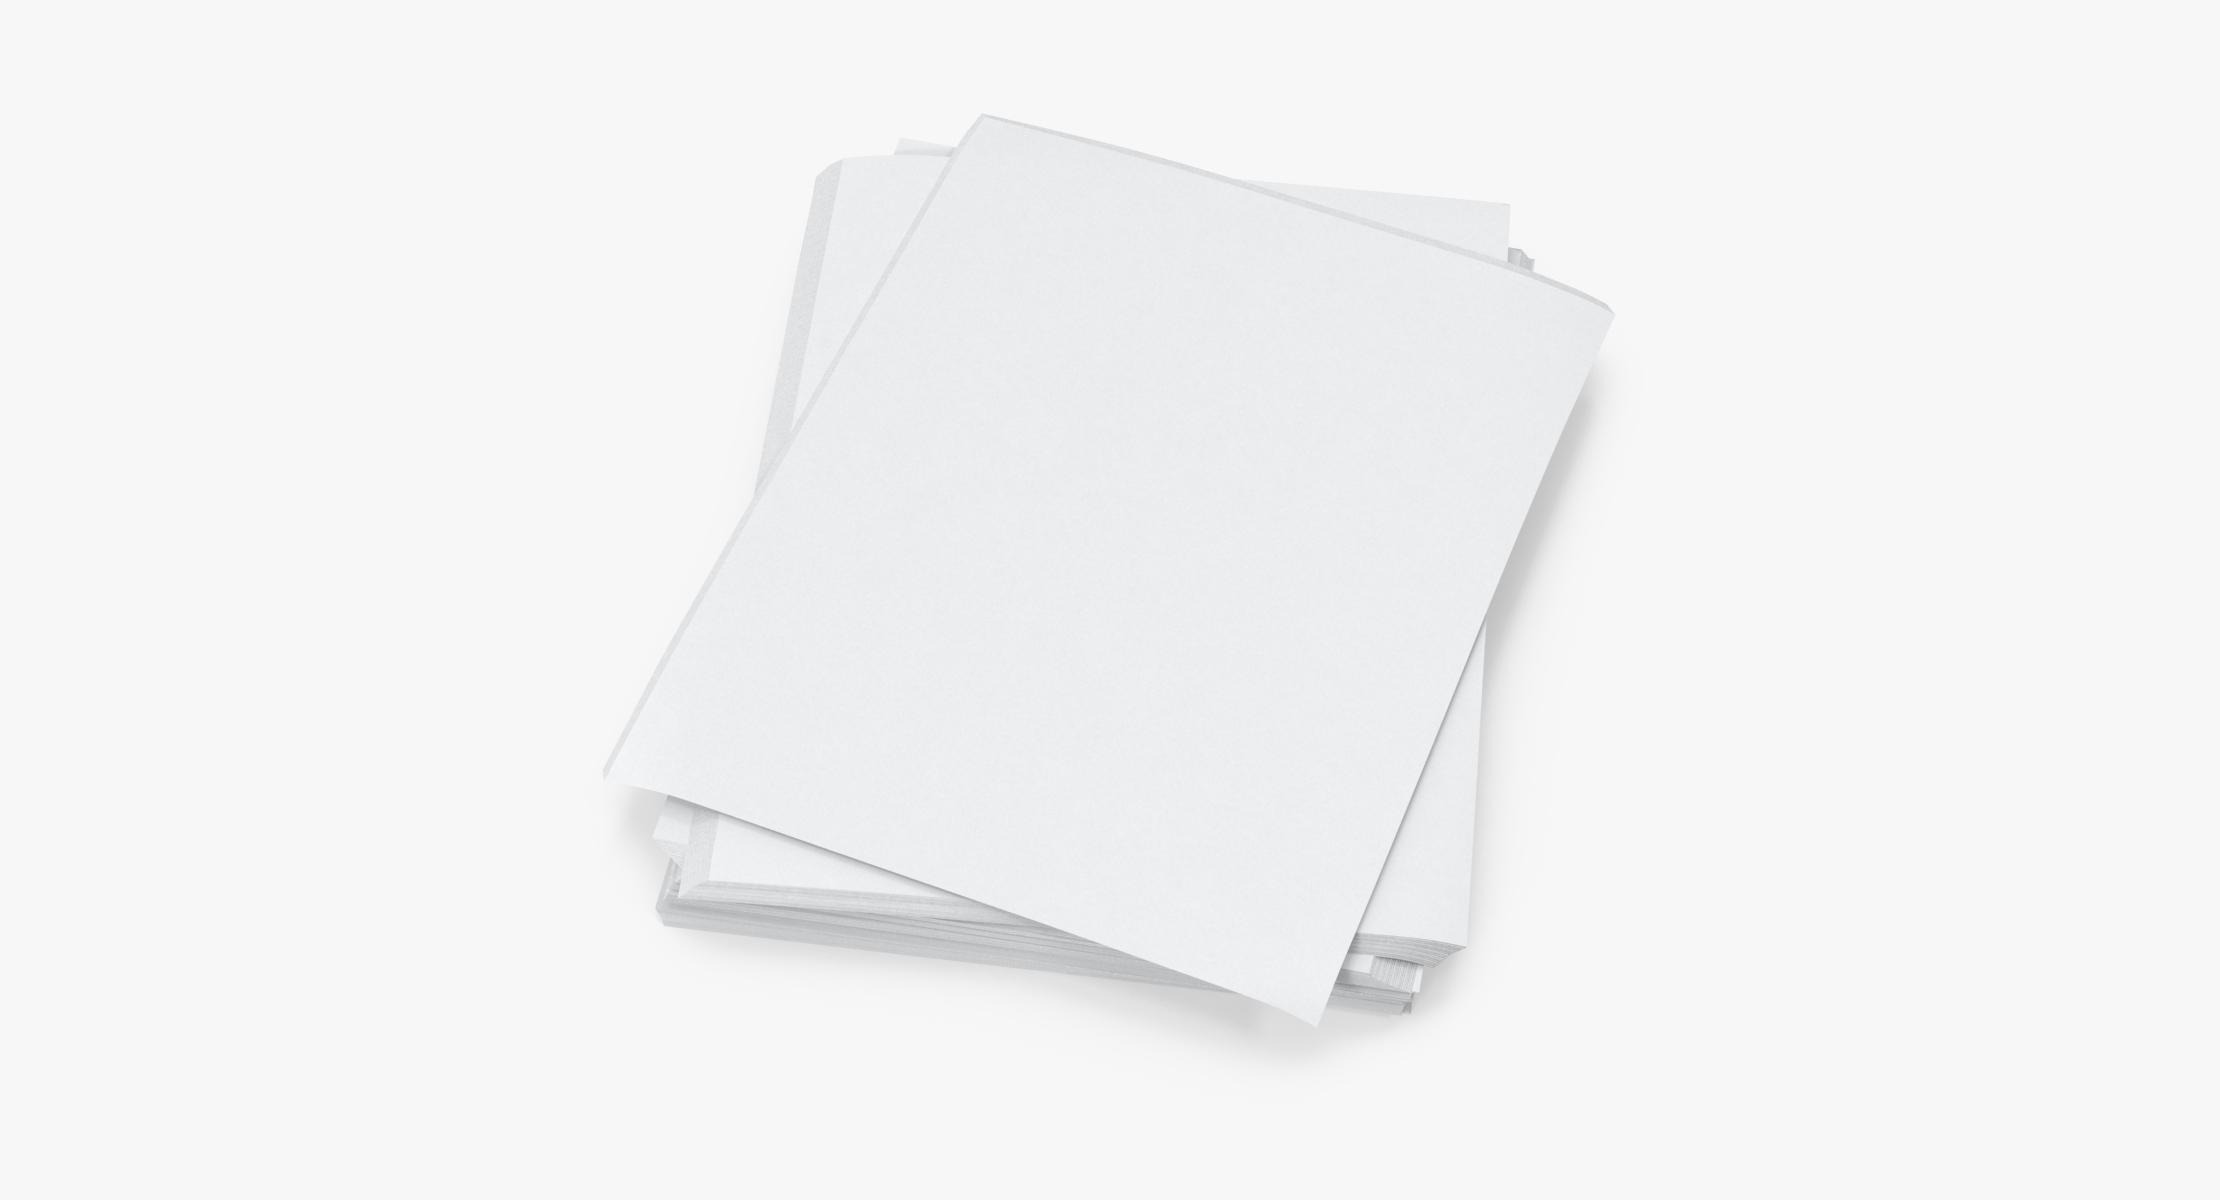 Small Stack of Paper Sheets 02 - reel 1